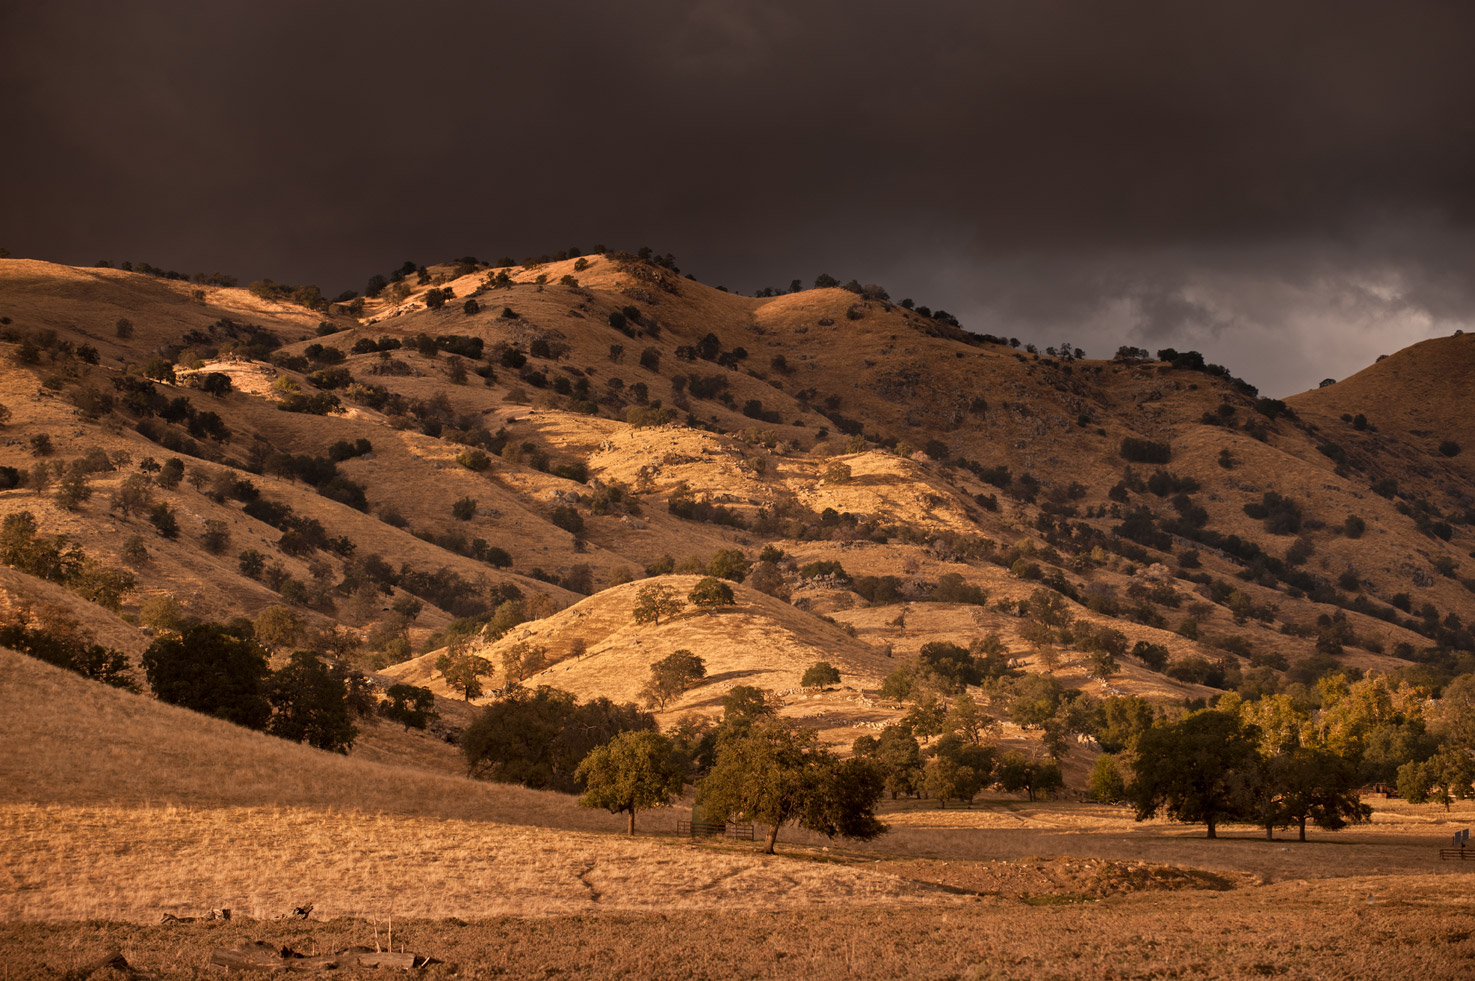 Sunset grazes the hills of the Yokohl Valley as a storm sweeps in off the mountains